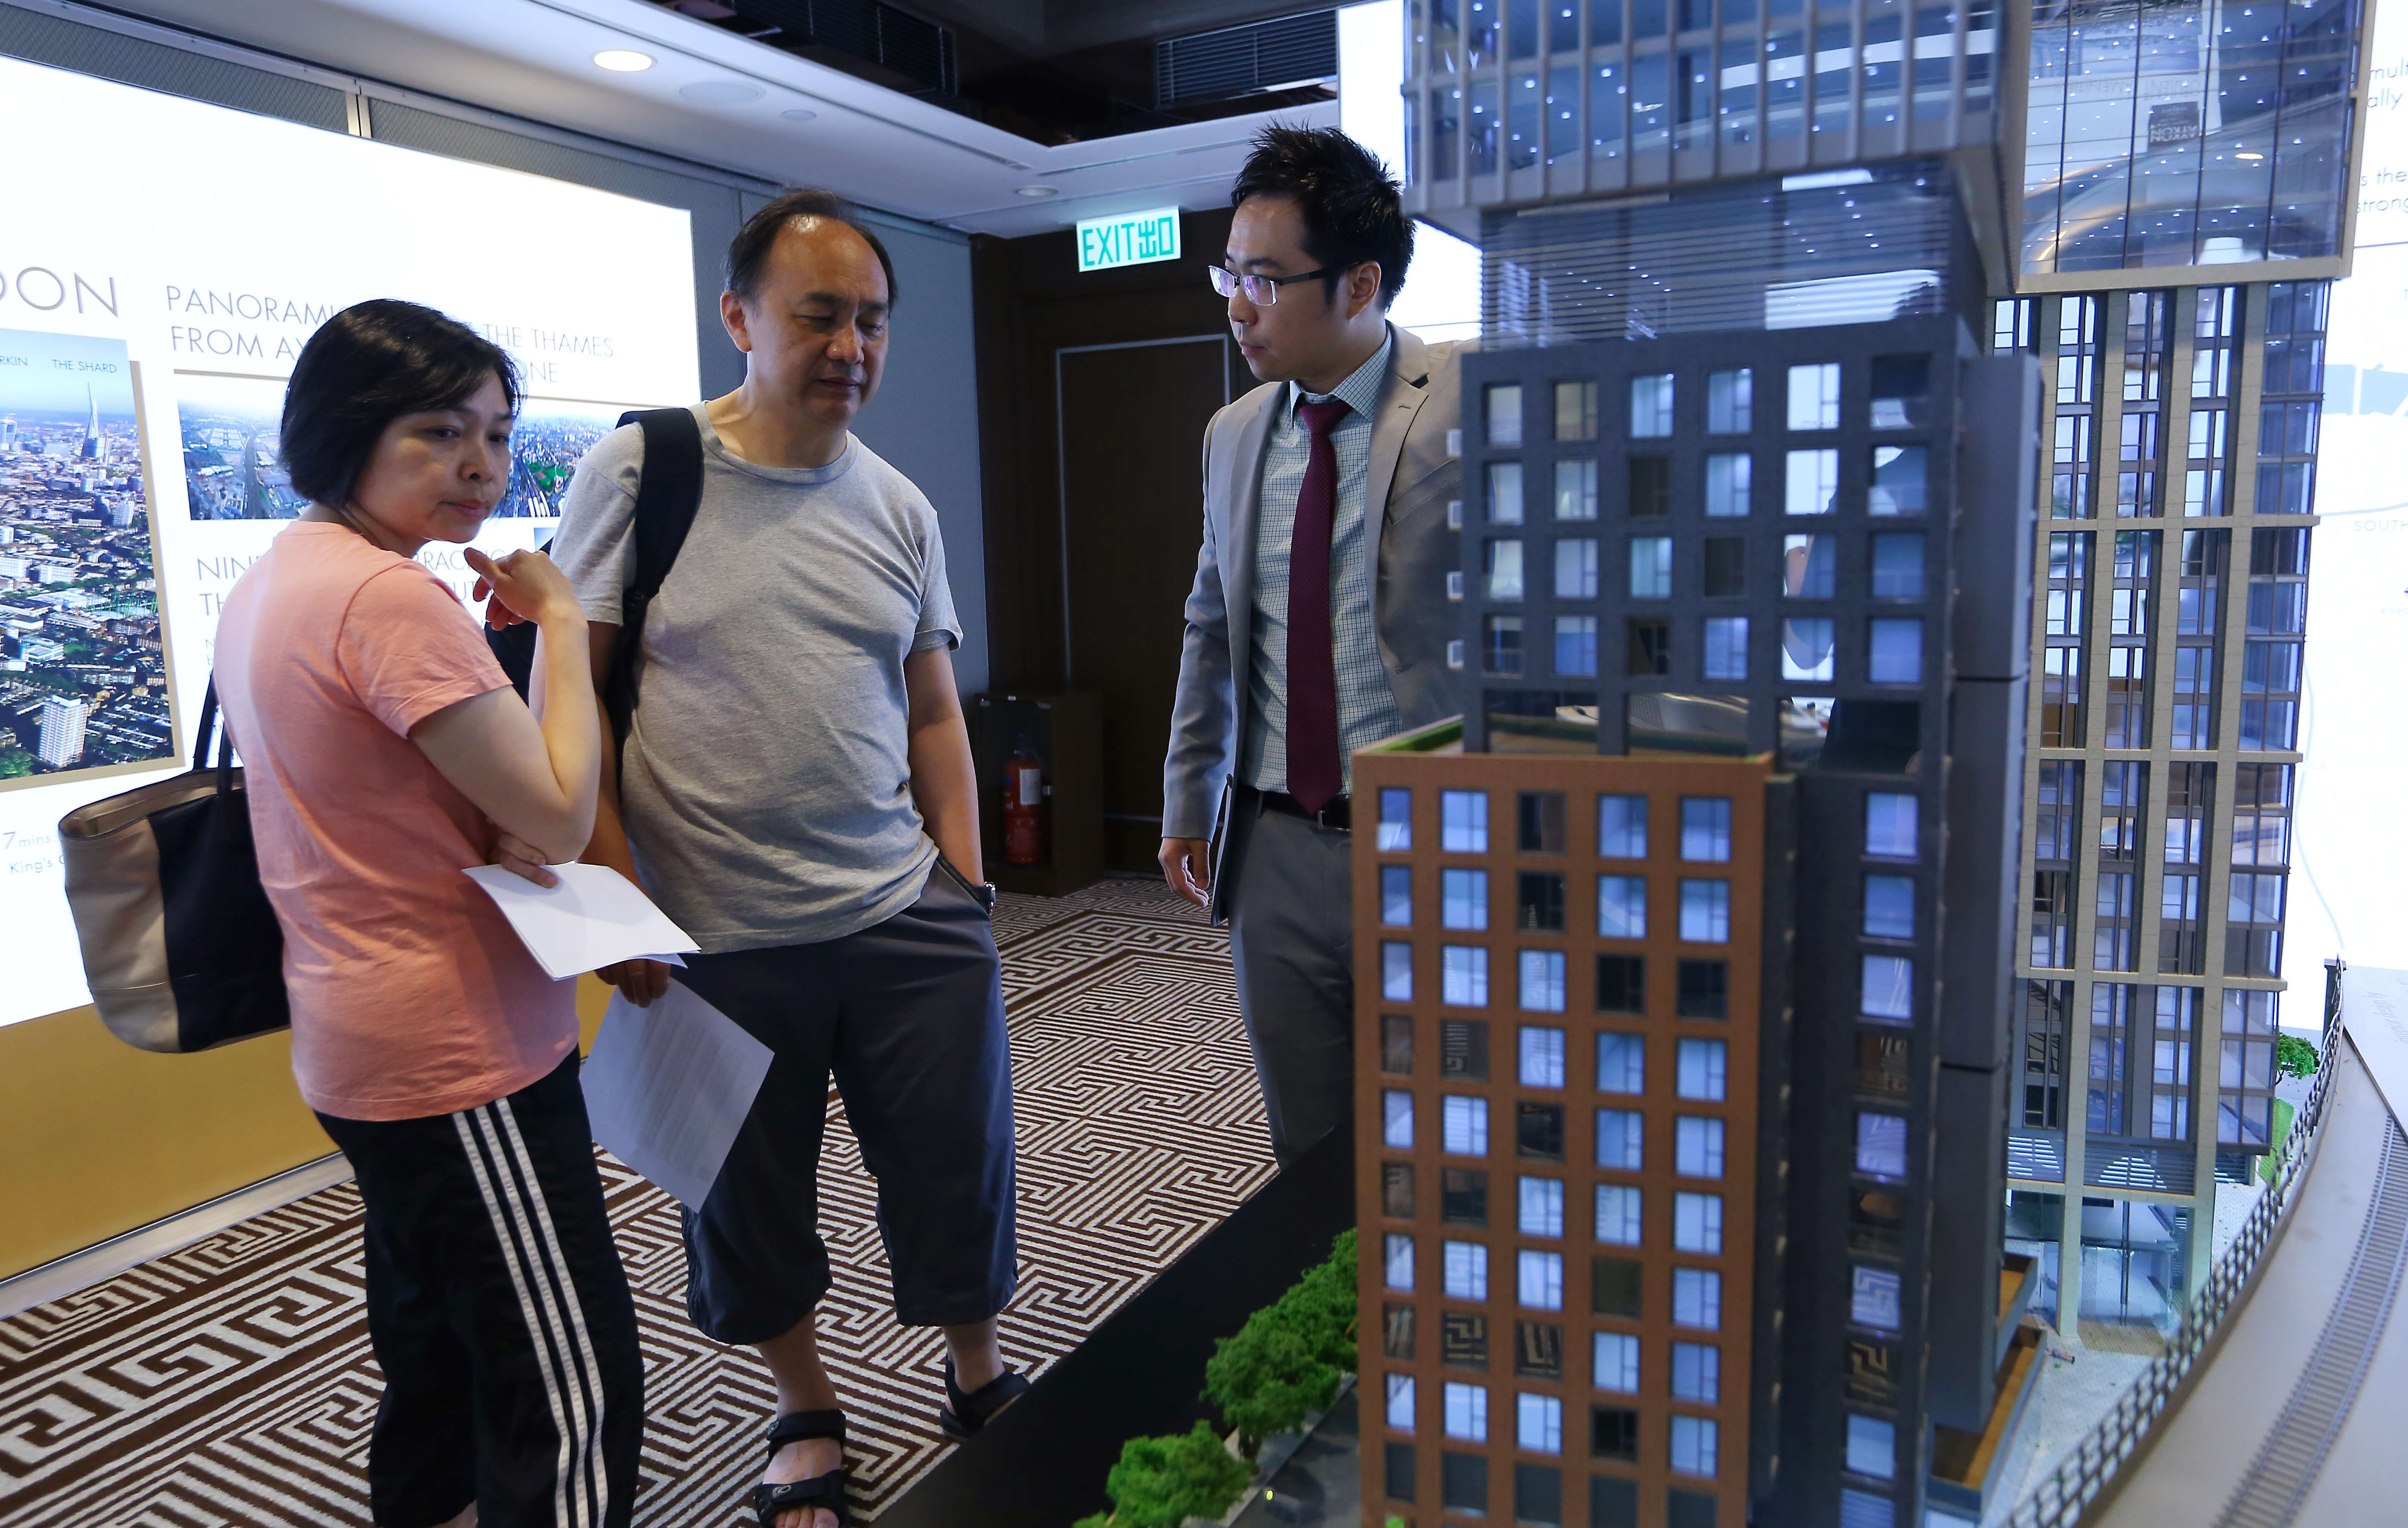 London housing probe: Hong Kong investors have cause for concern, as